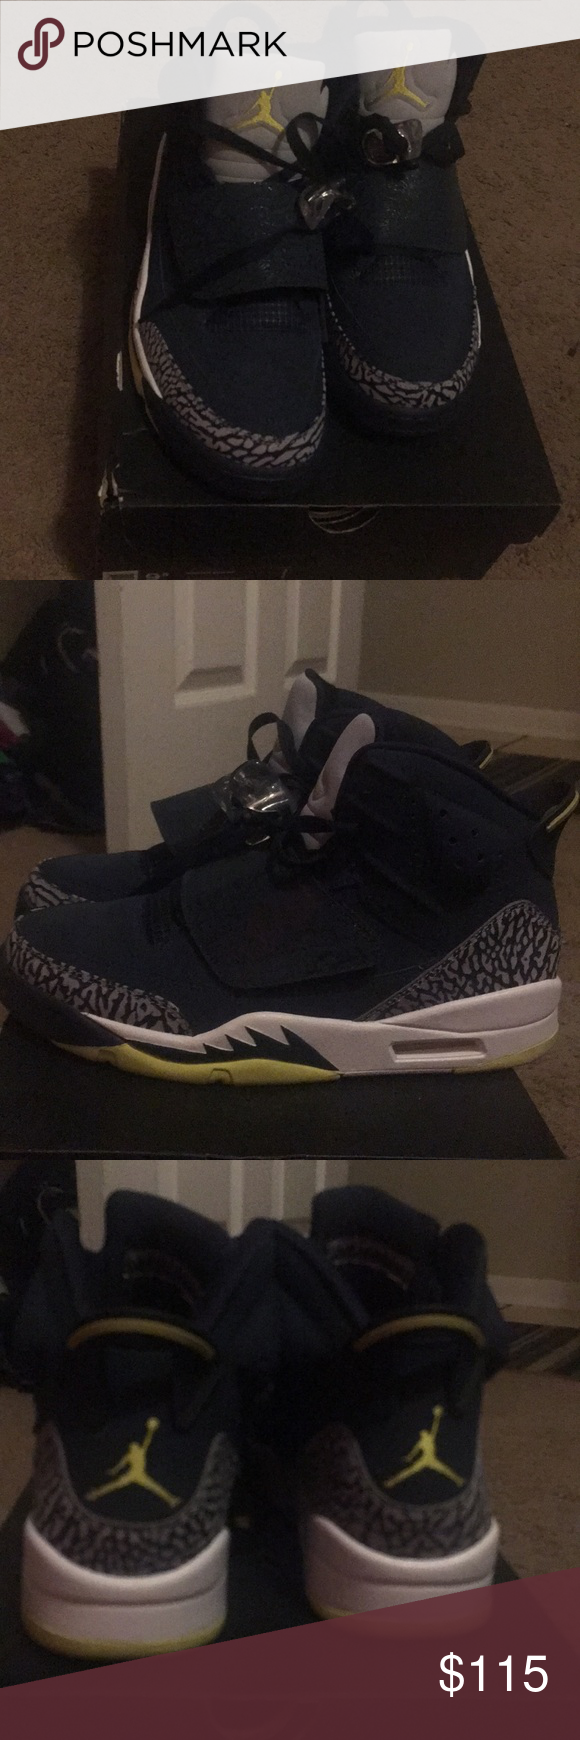 dea4c1c18630 Air Jordan Son Of Mars Air Jordan Son Of Mars 512245 405 Armory Navy  Blue electrolime Like new only worn once. Air Jordan Shoes Athletic Shoes